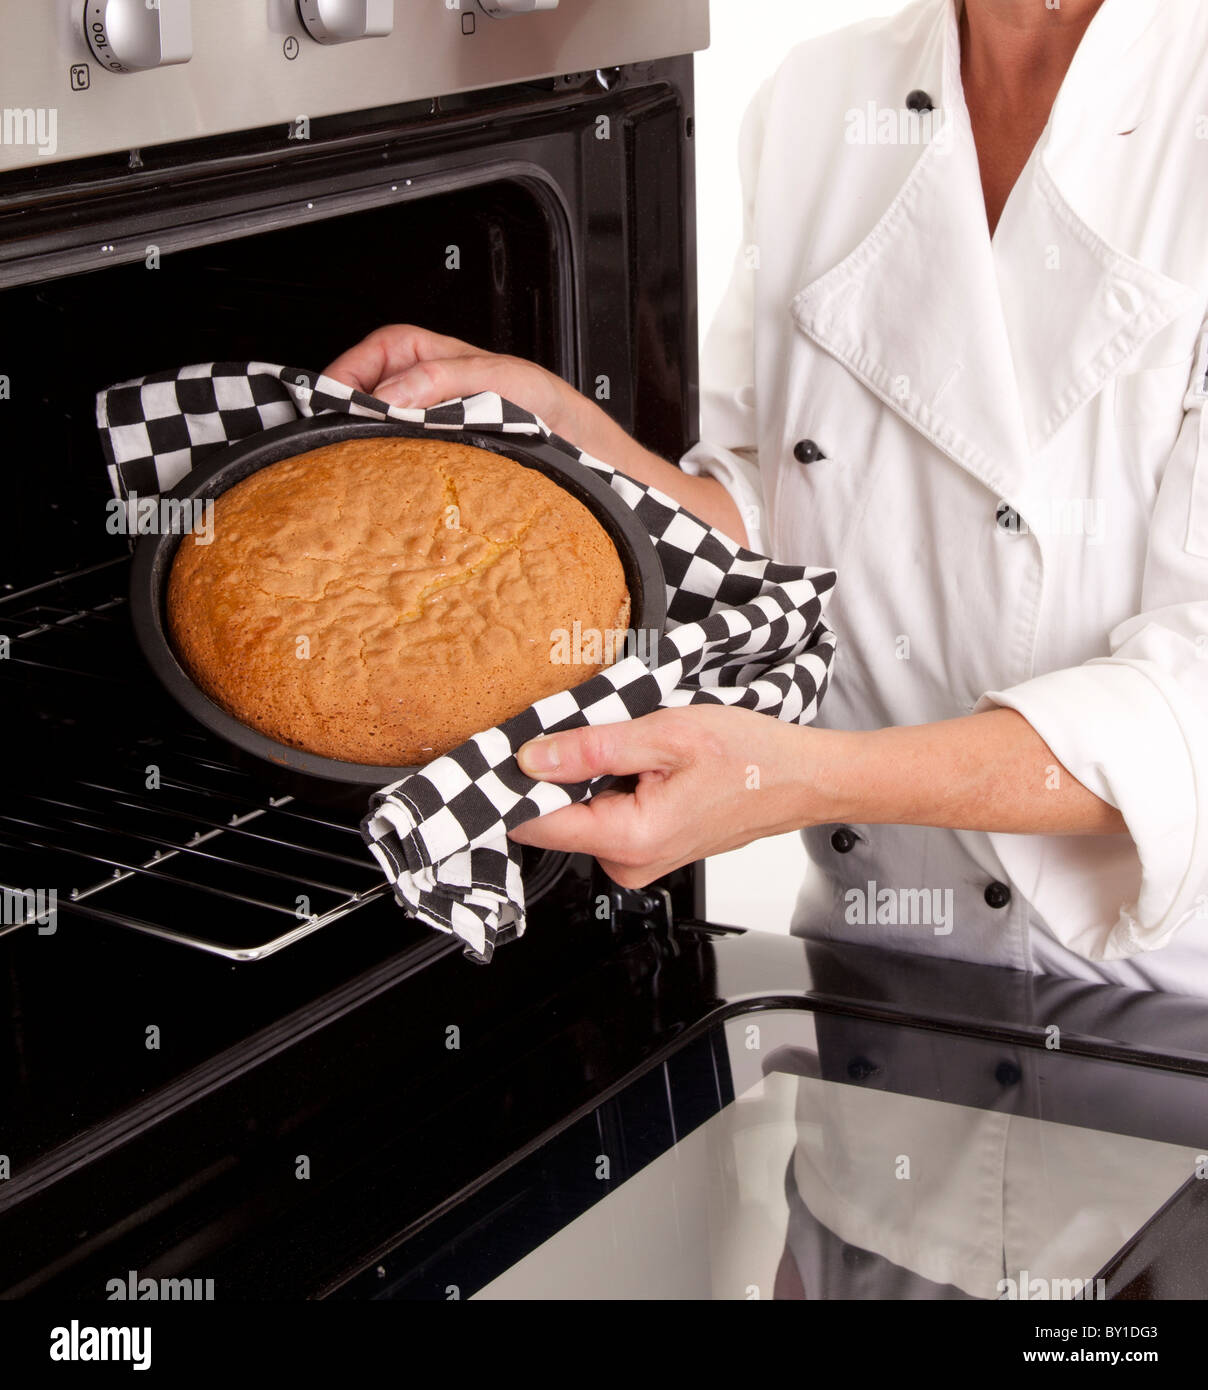 CHEF TAKING COOKED SPONGE CAKE OUT OF OVEN - Stock Image